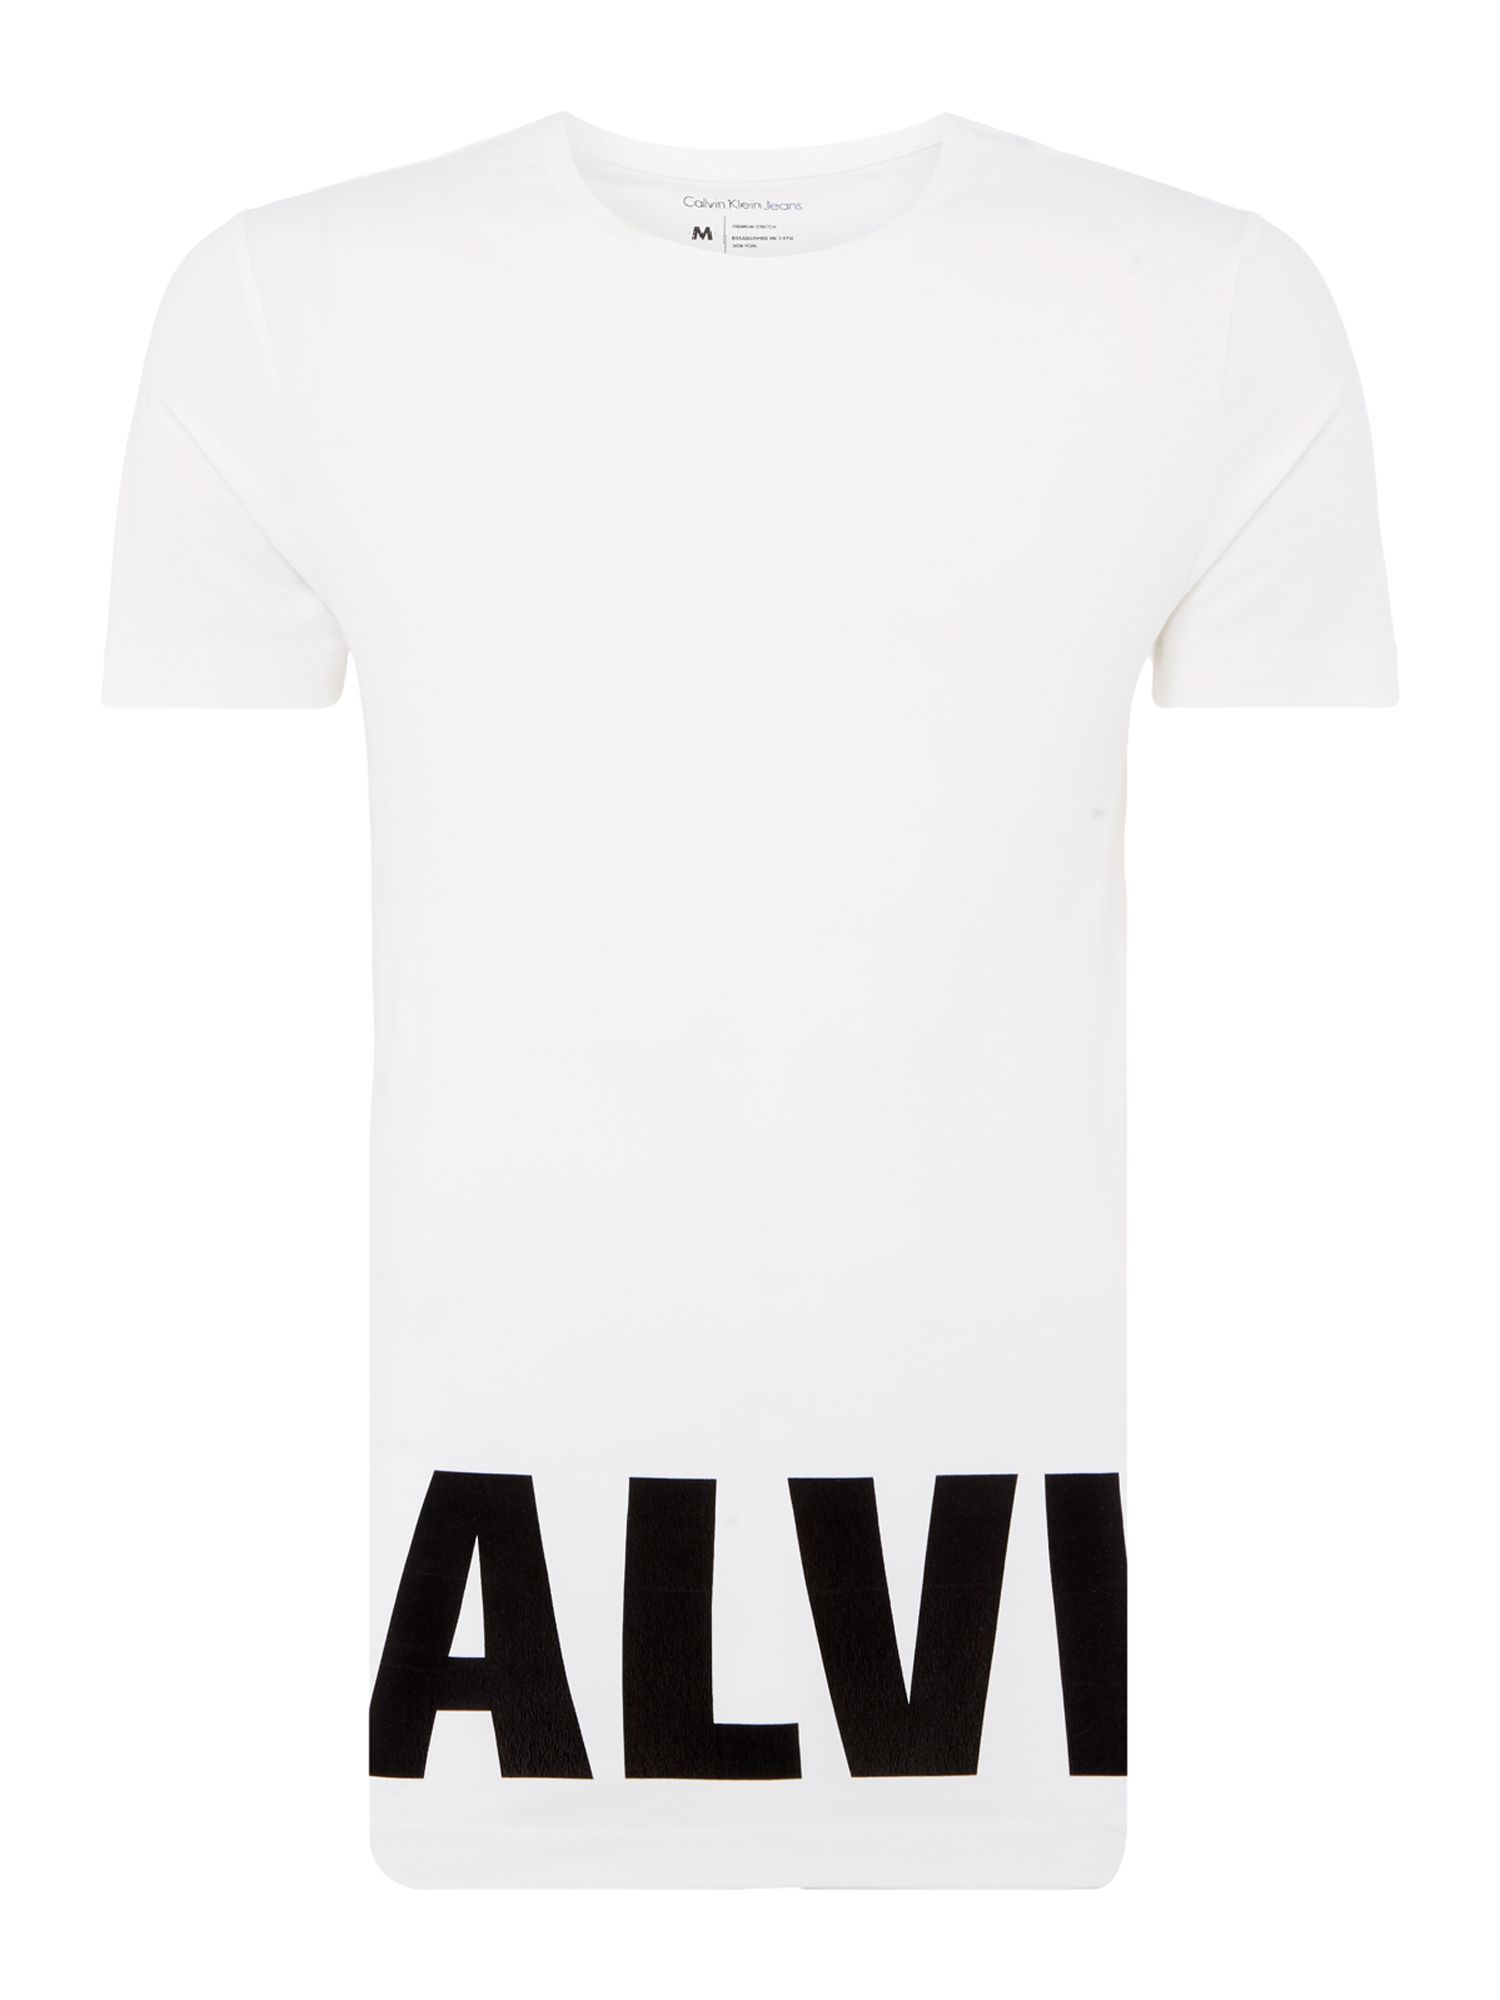 Men's Calvin Klein Troop Slim Fit T-shirt, White